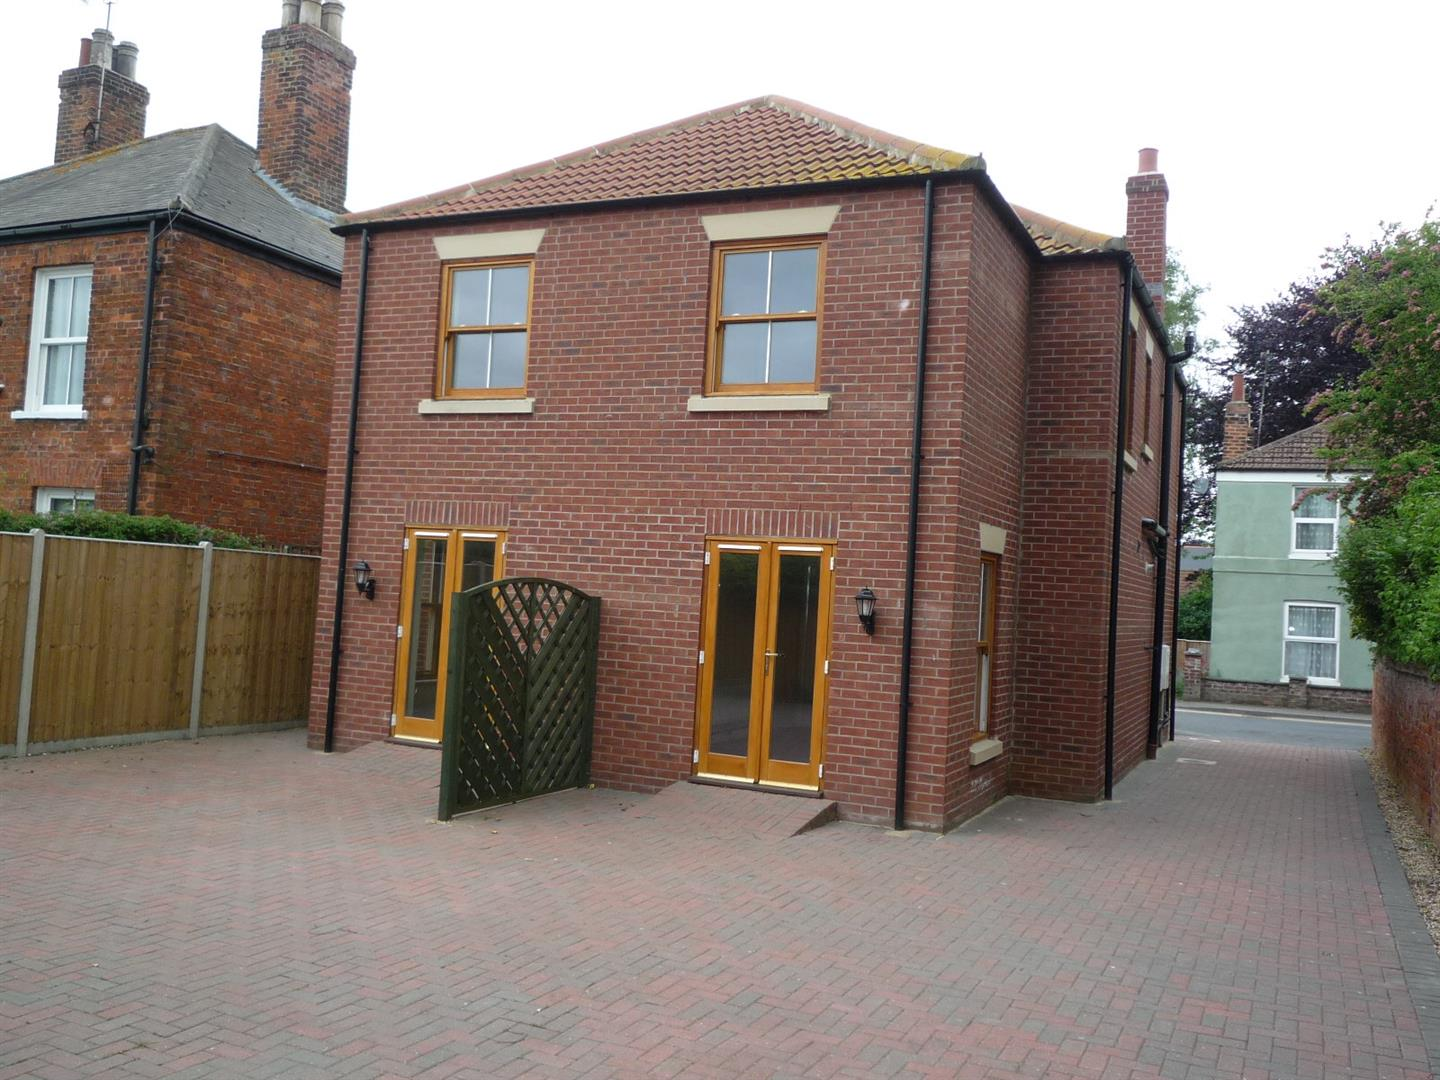 3 bed house to rent in Holbeach Spalding, PE12 7DR  - Property Image 2